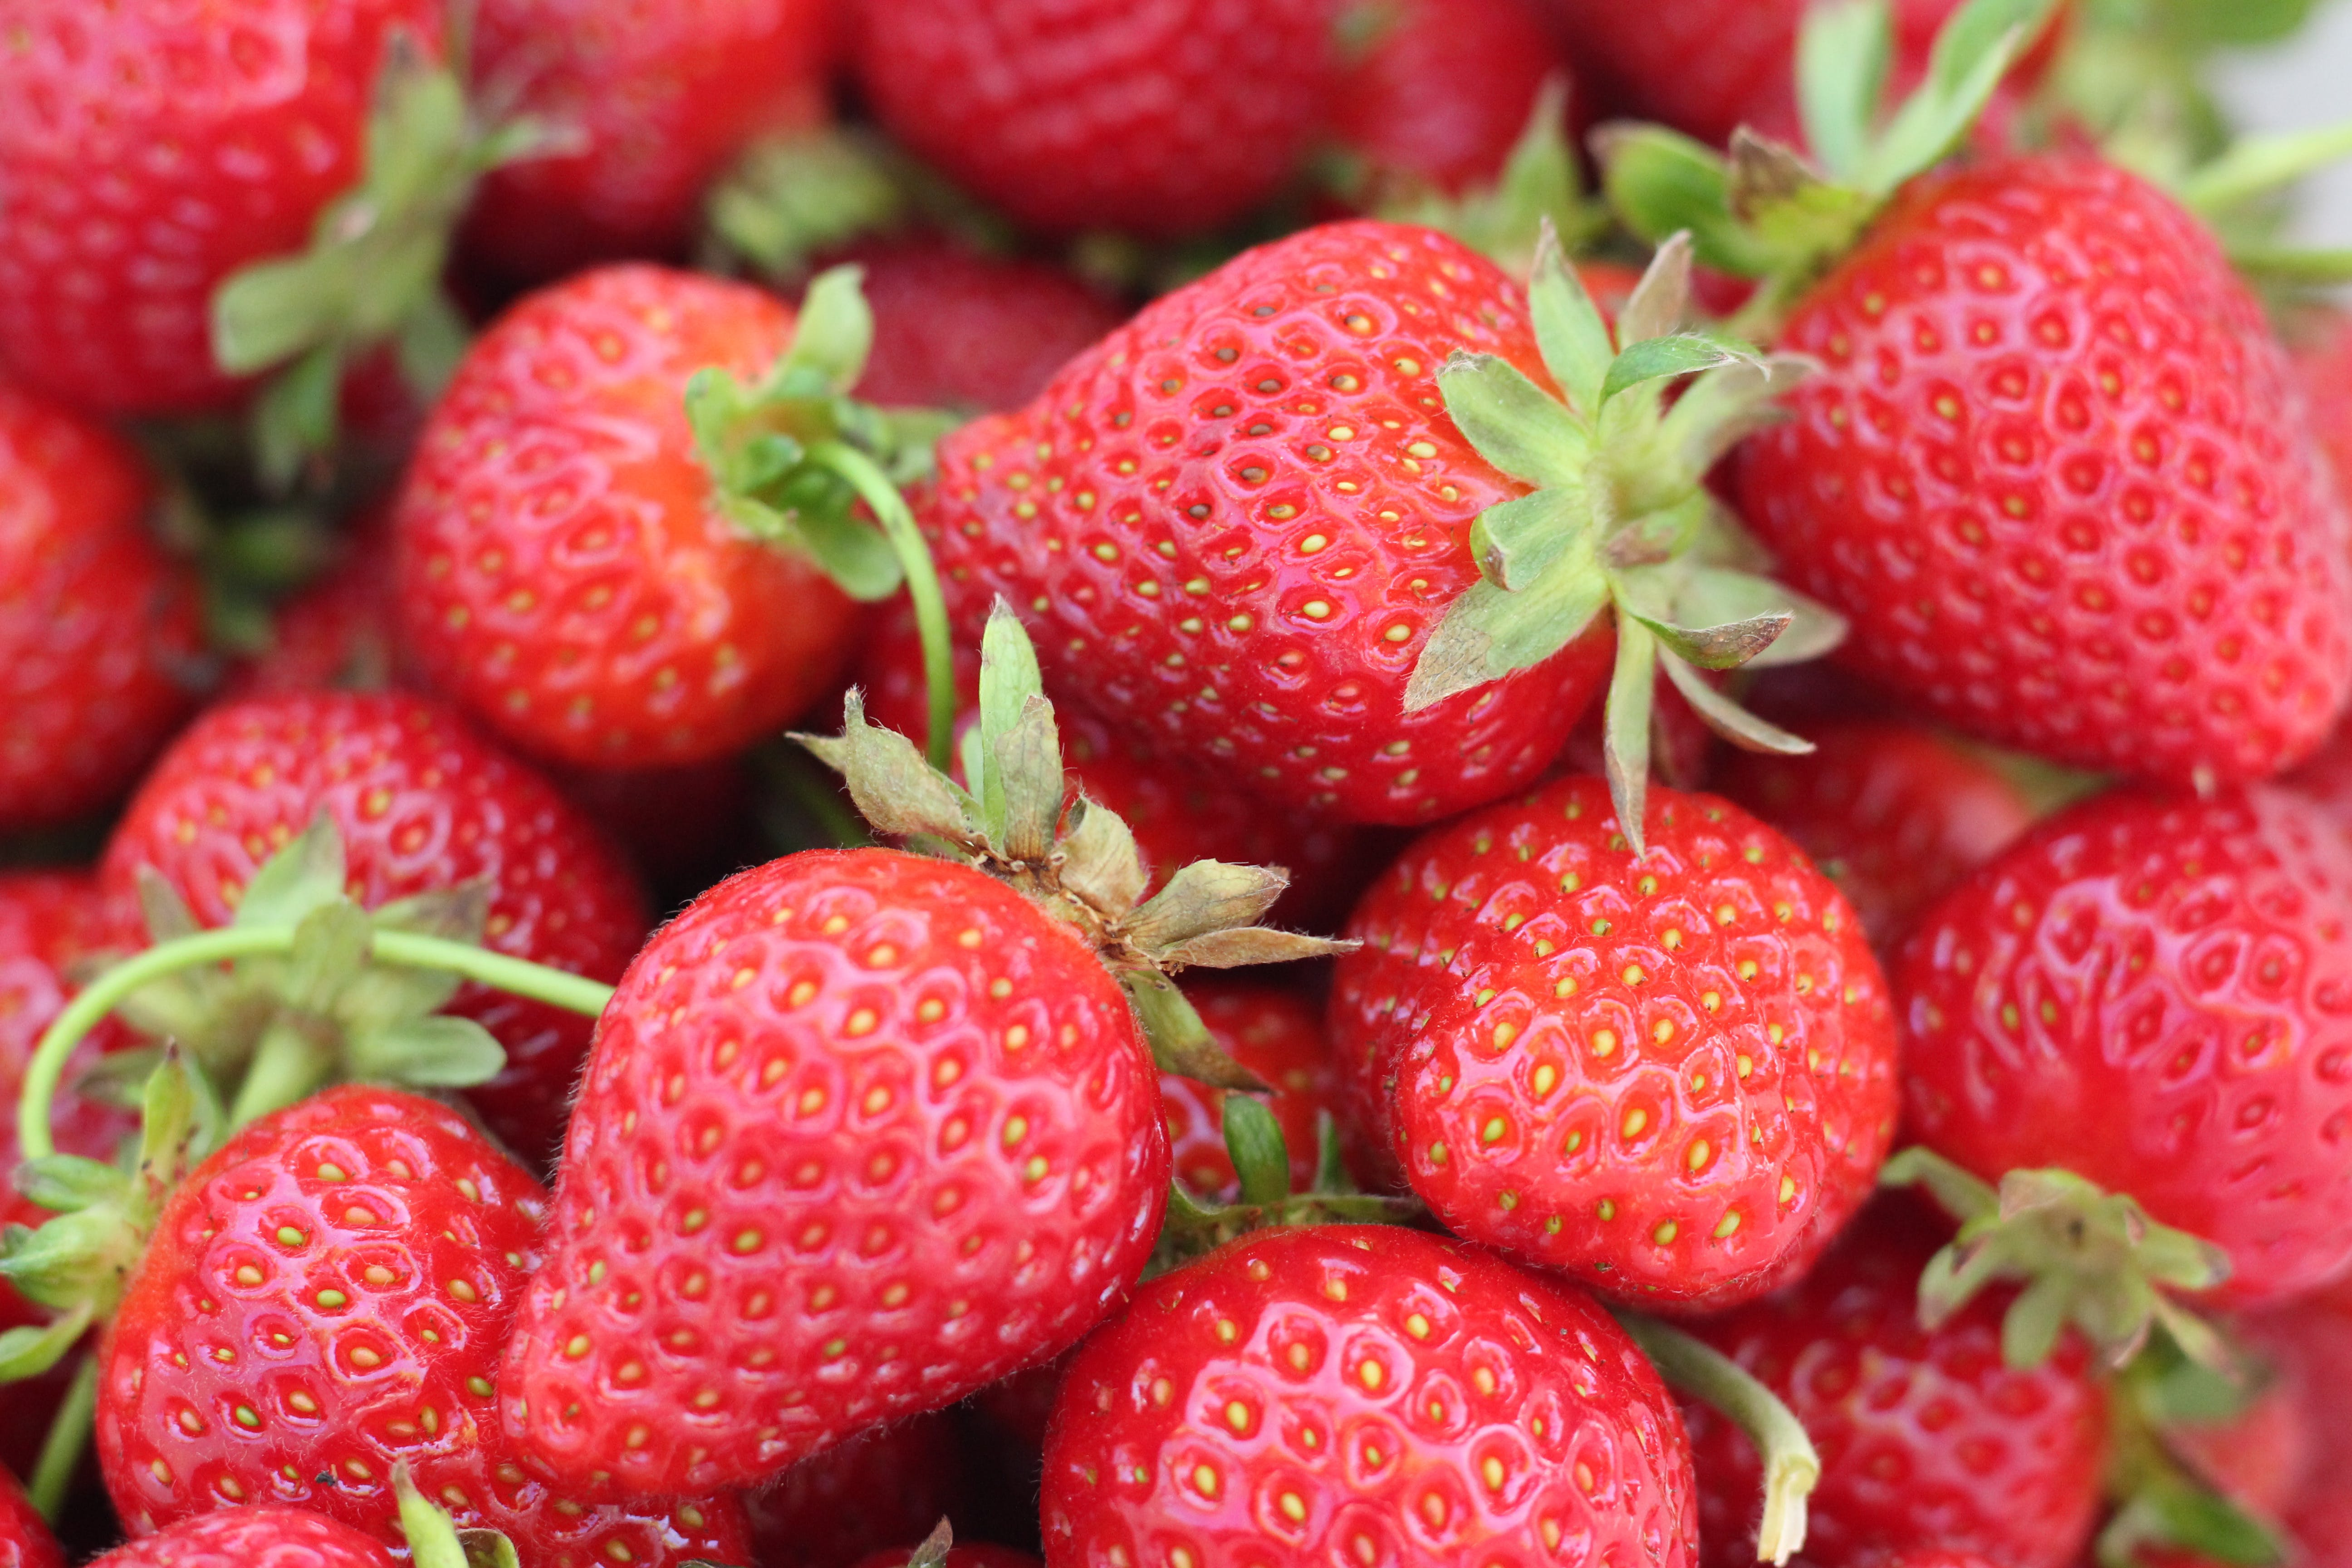 Strawberry Close Up Photo